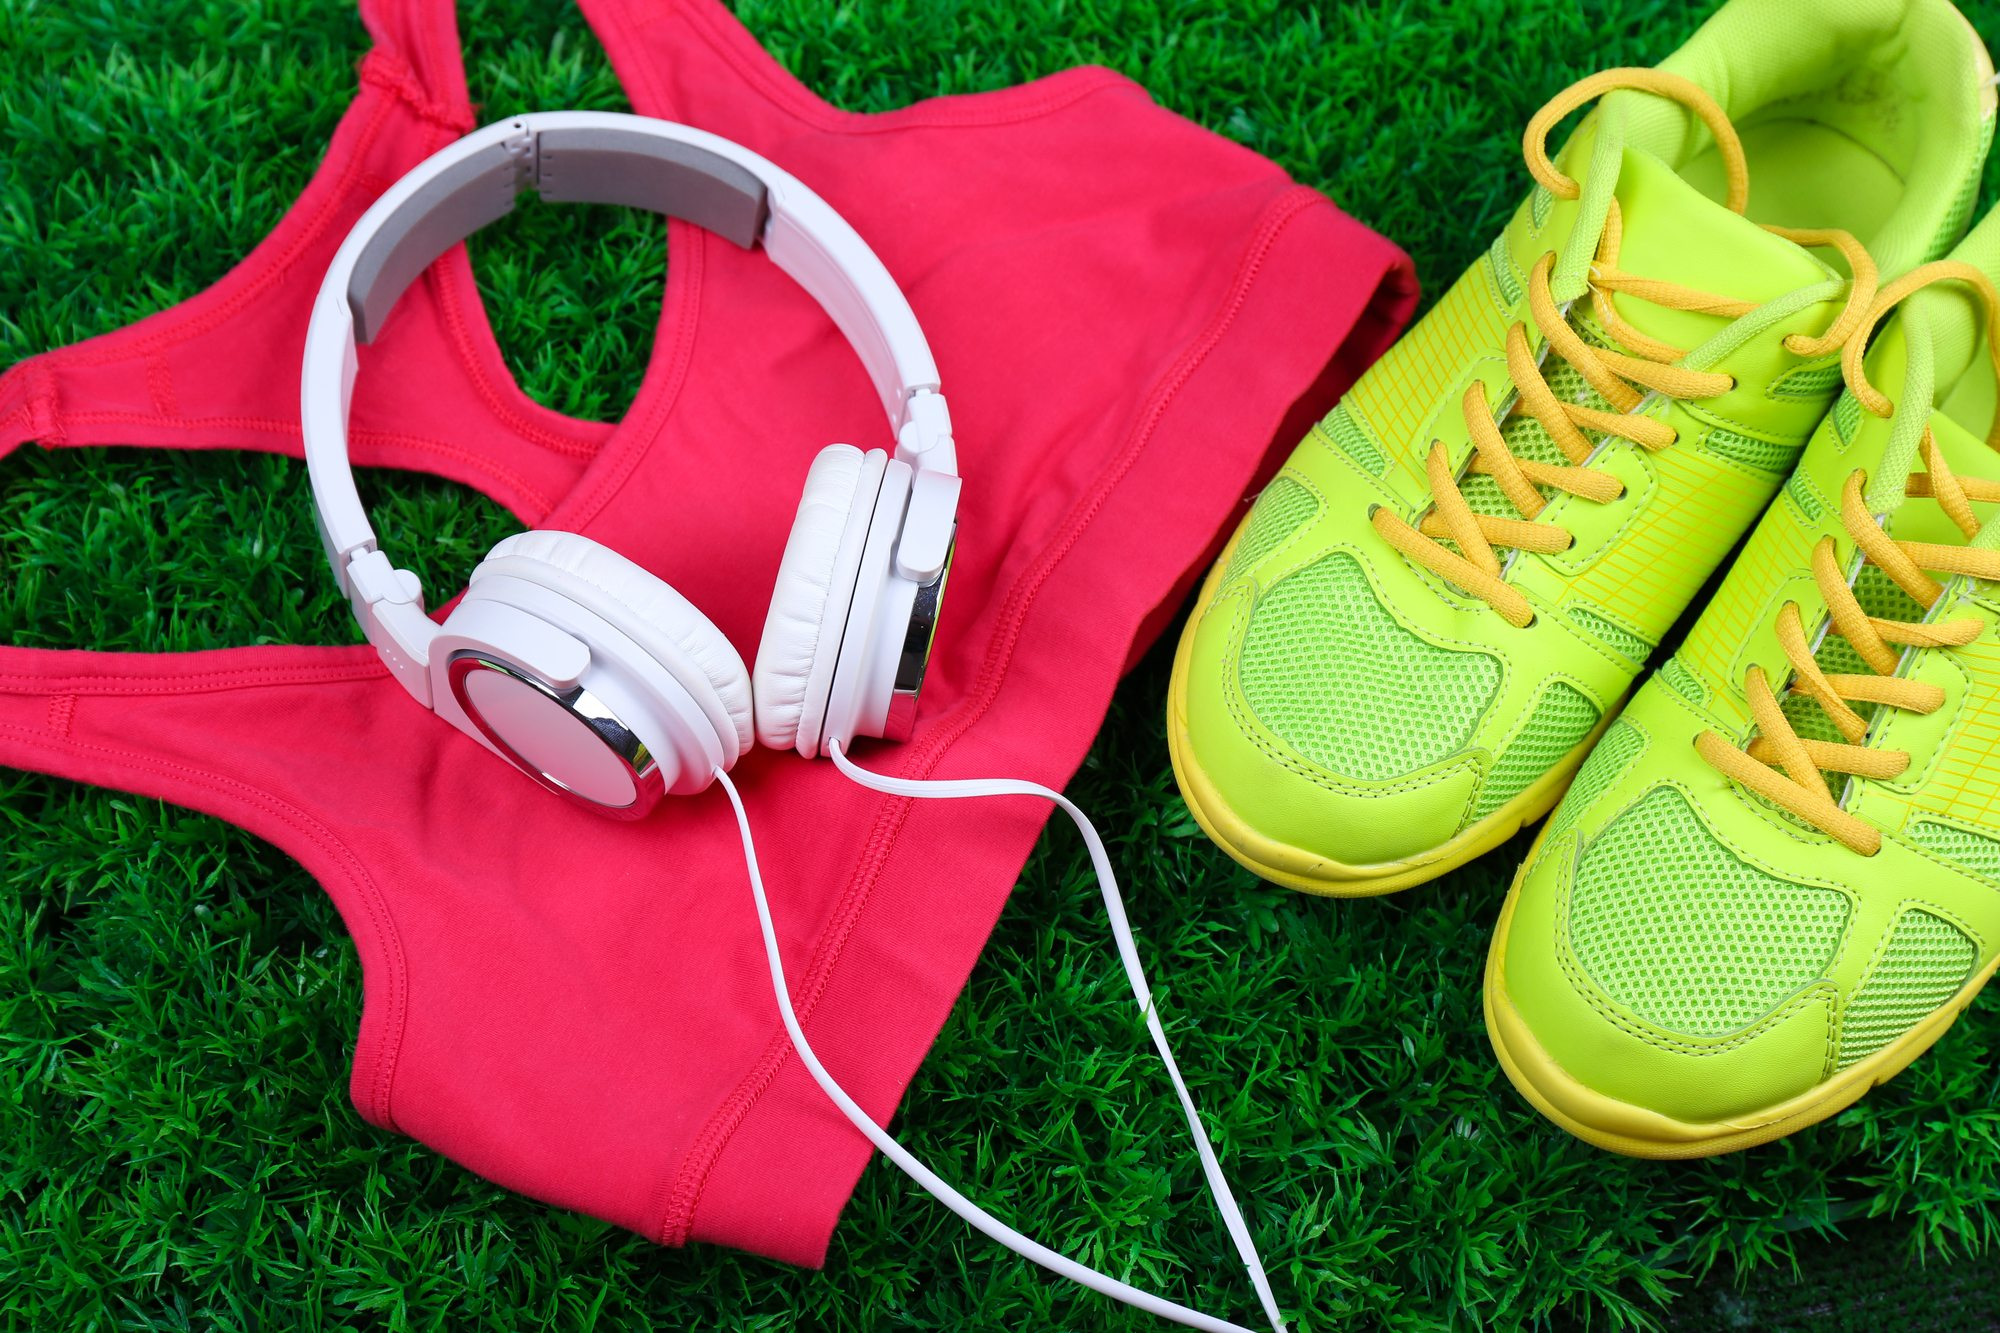 19 Songs to Get You Moving